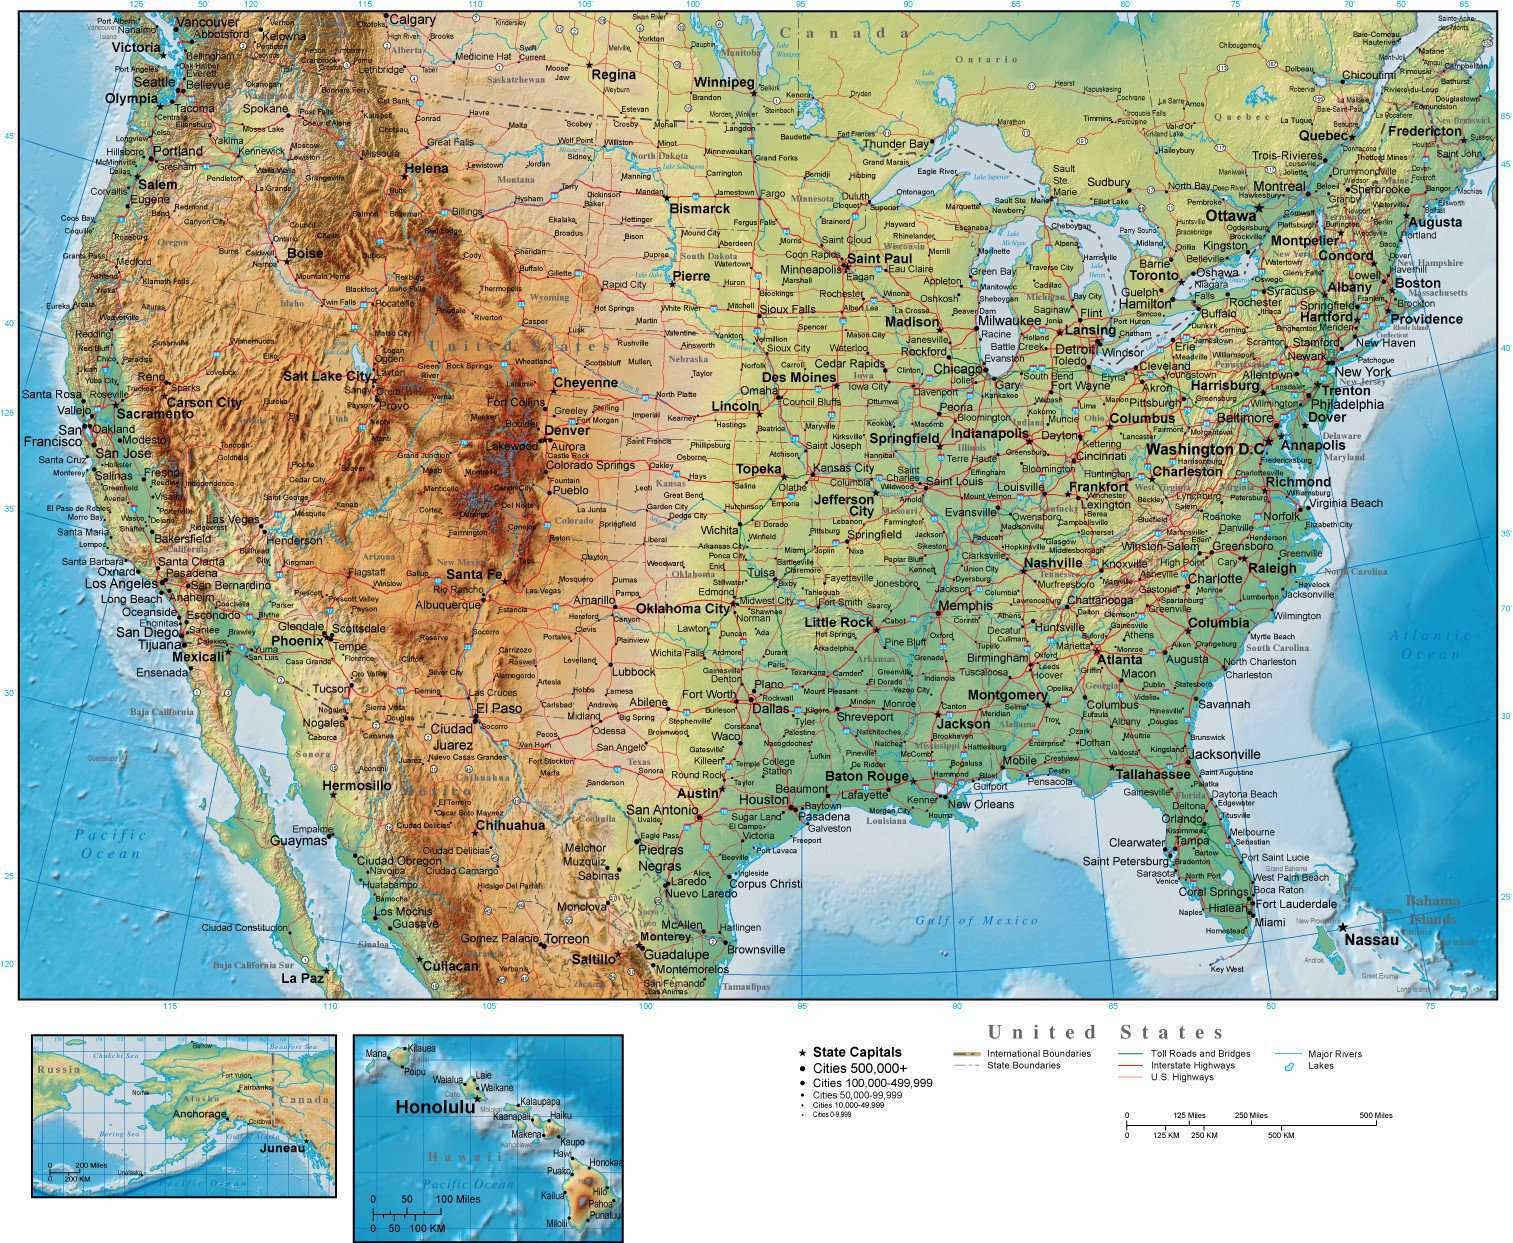 United States Map Geography Of North America Wikipedia Sinkholes - Contiguous us hillshade map